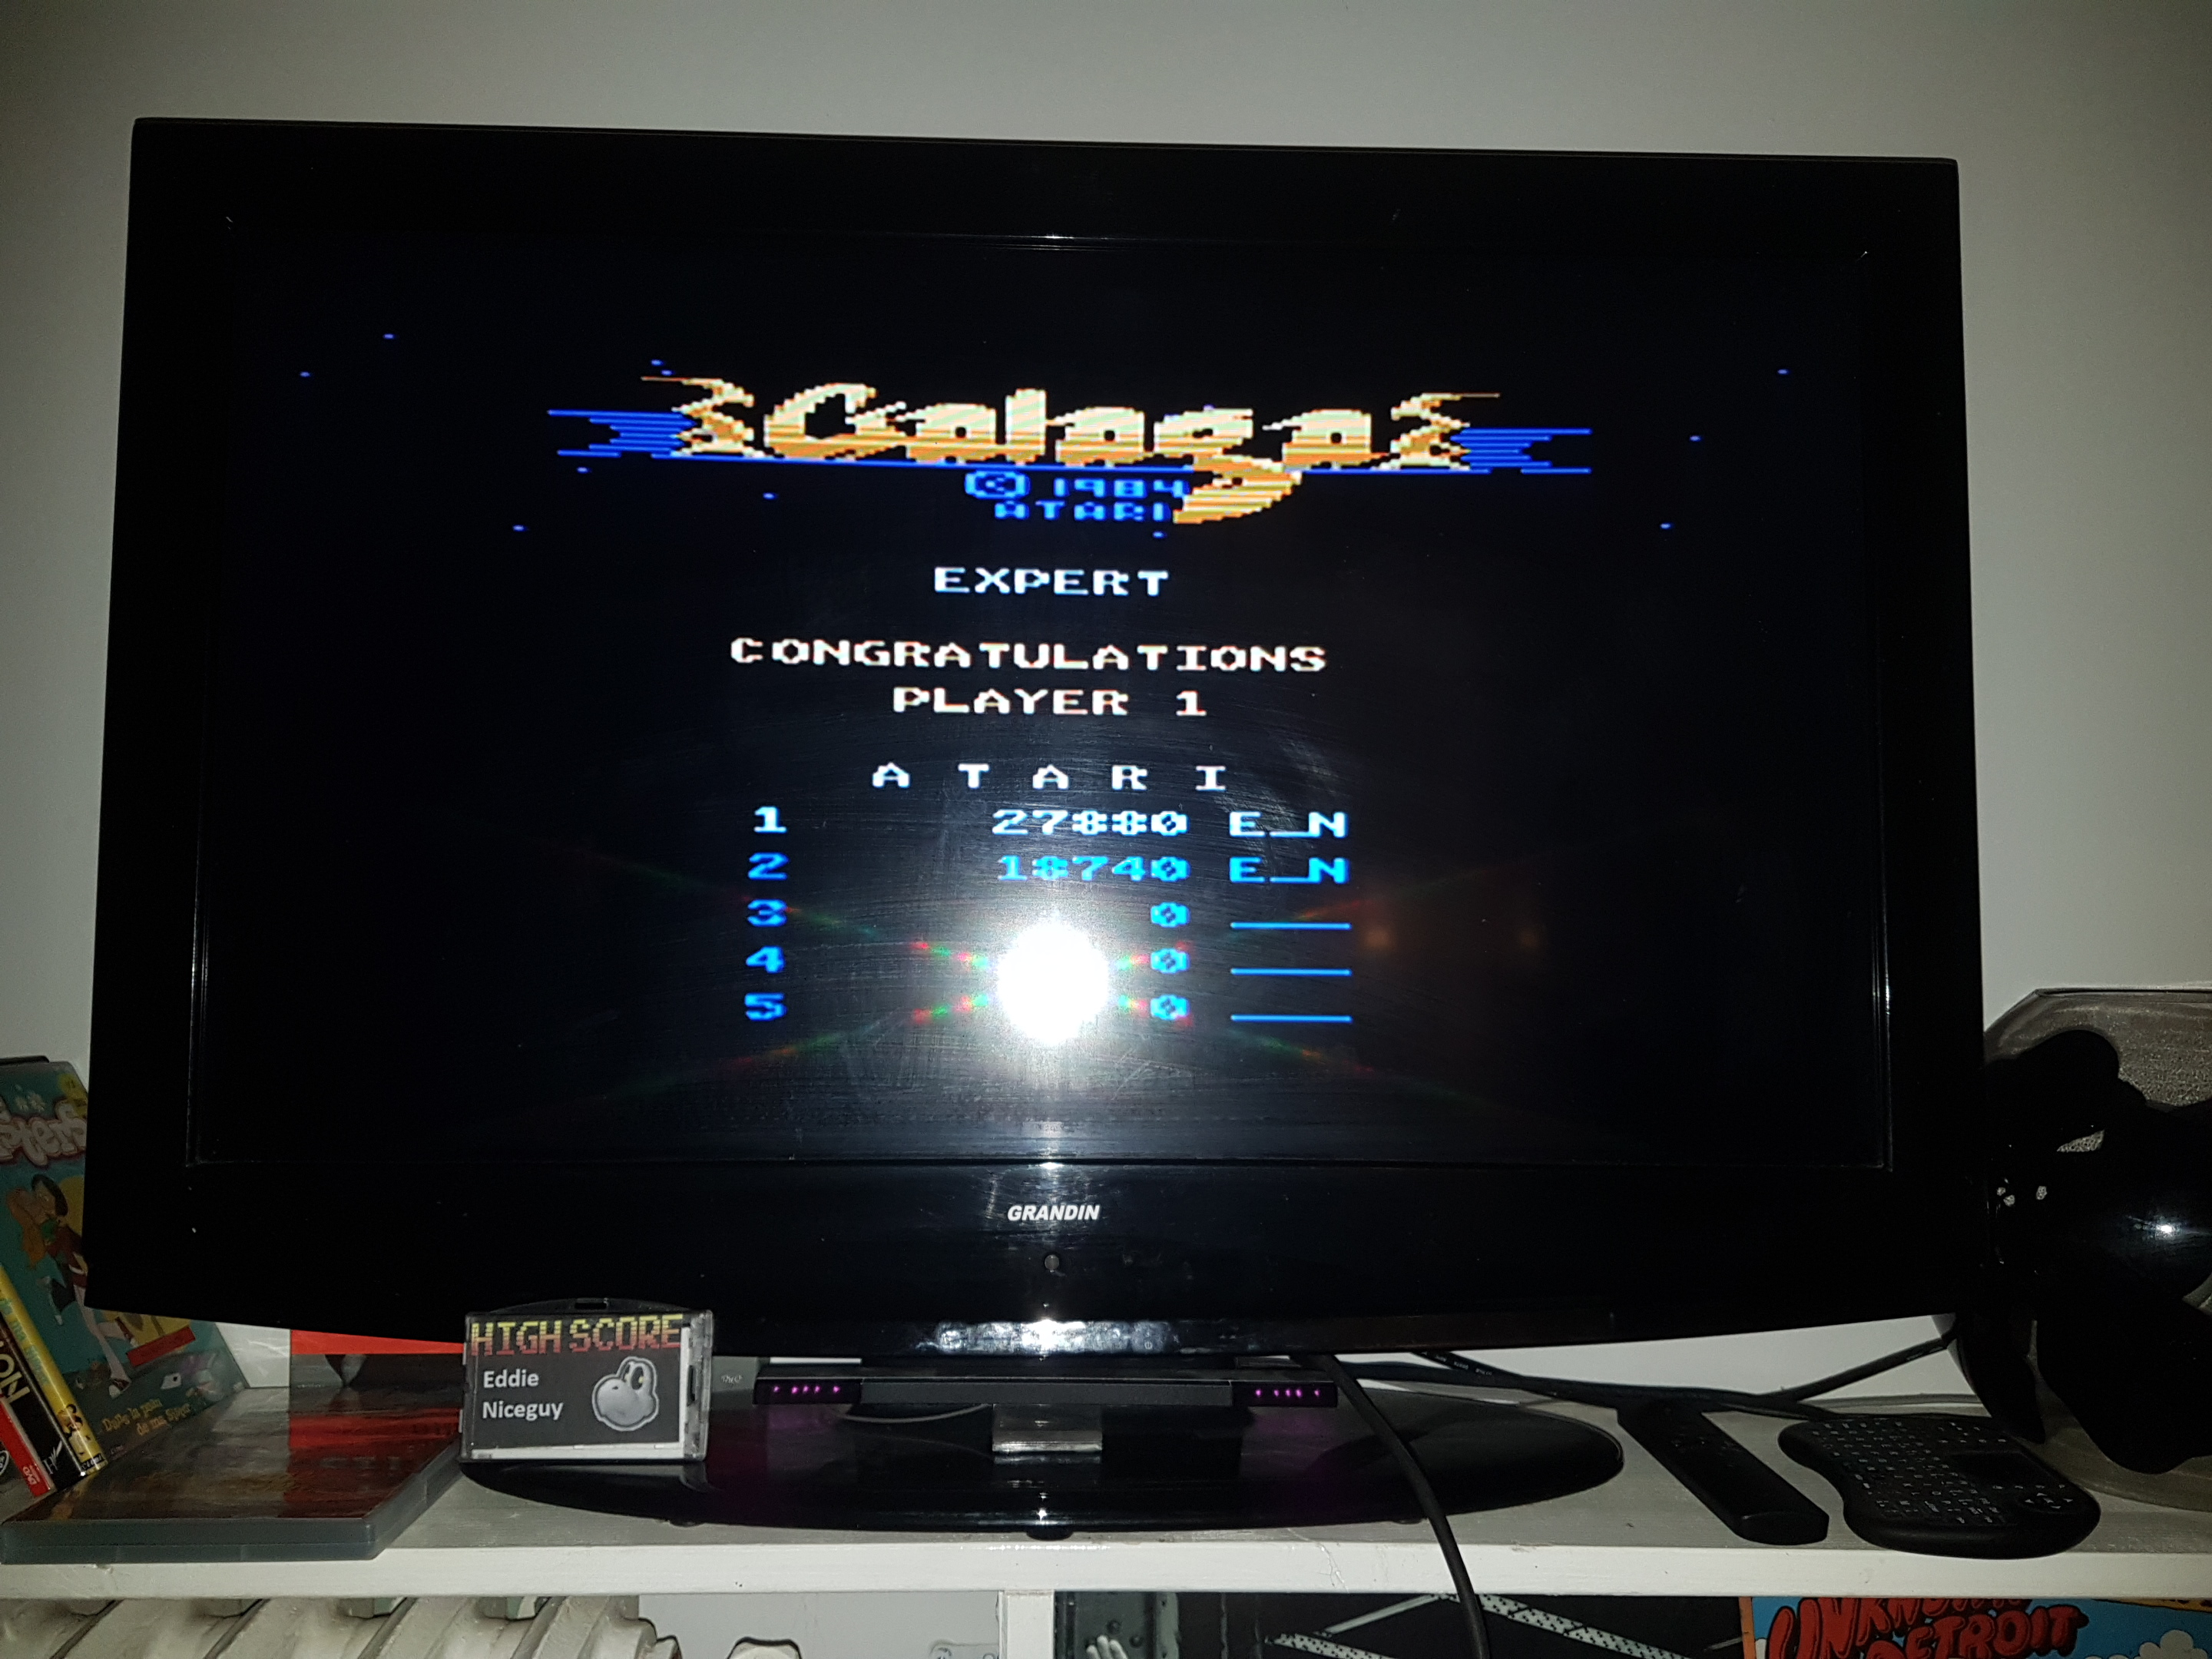 EddieNiceguy: Galaga: Expert (Atari 7800 Emulated) 27,880 points on 2019-03-22 17:18:10